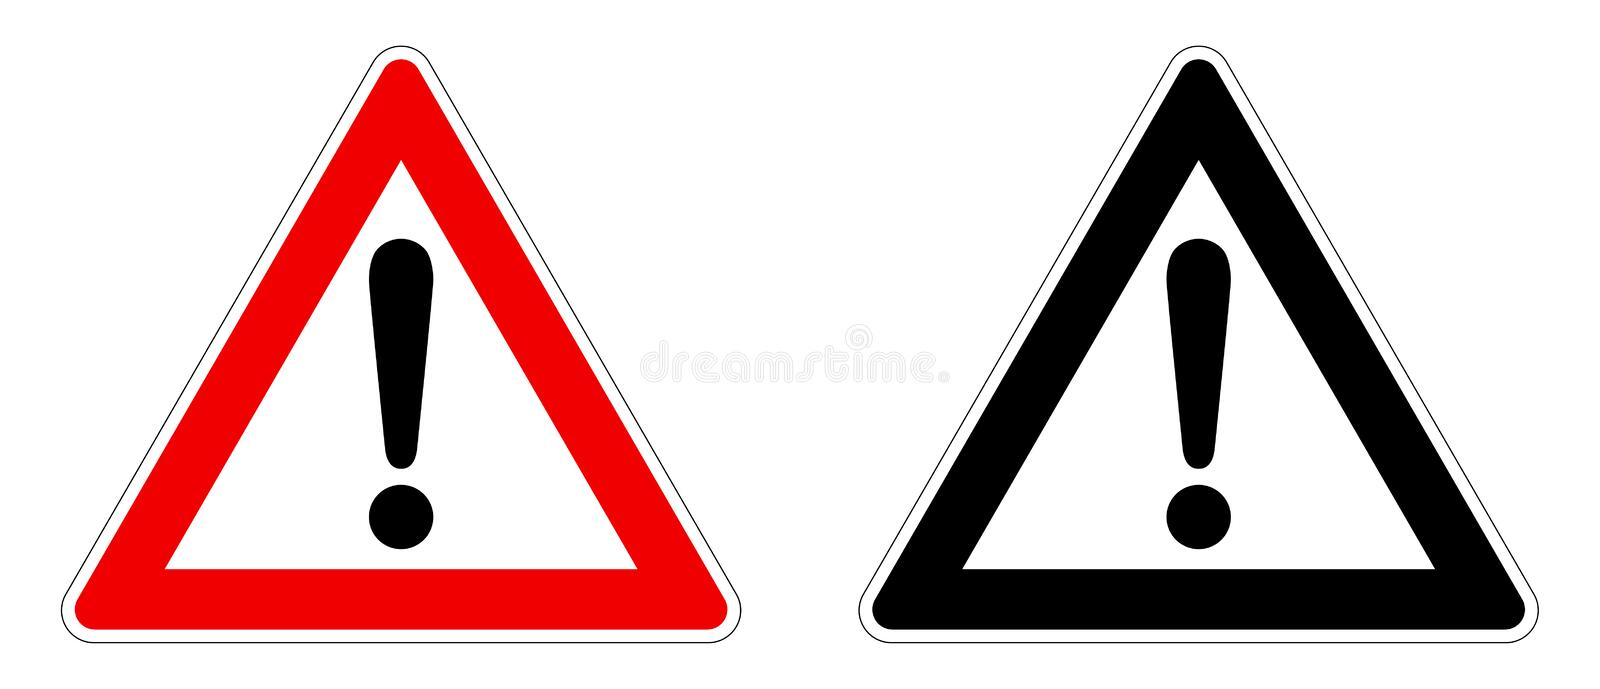 Warning / Attention sign. Exclamation mark in triangle. Red / black and white version vector illustration